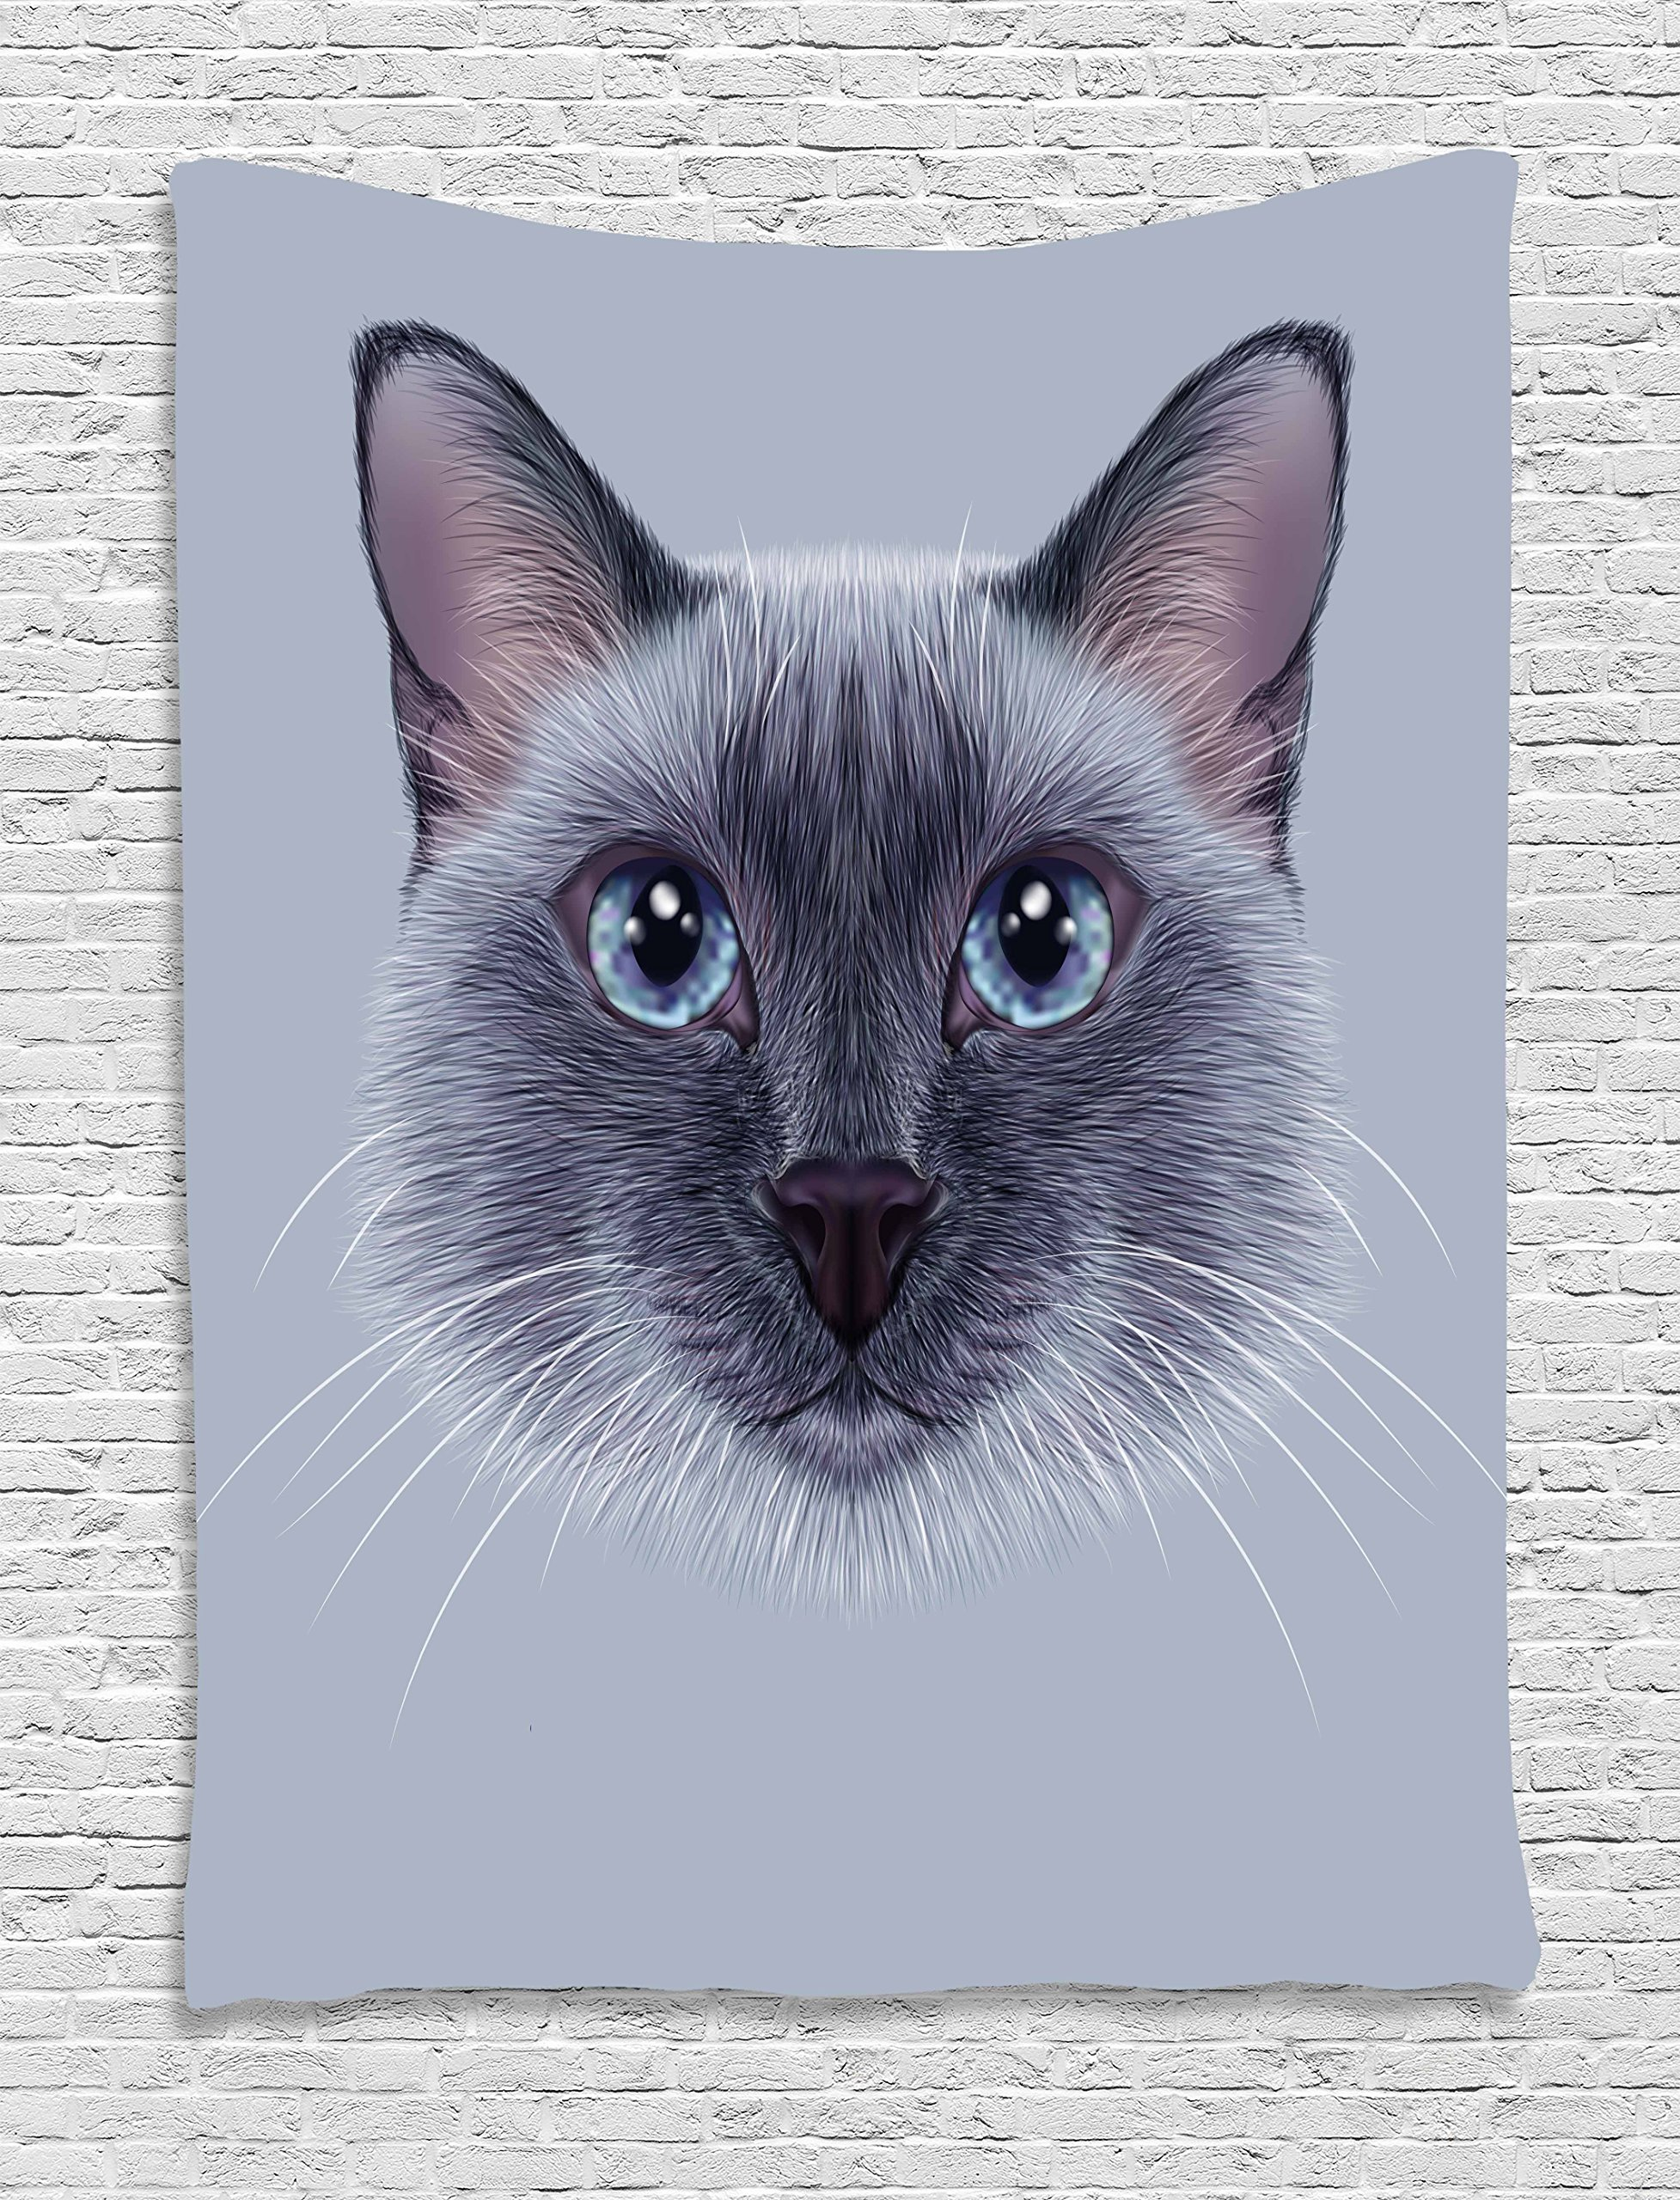 Ambesonne Animal Tapestry, Portrait Image of Thai Siamese Cat with Retro Style Lettering Artwork, Wall Hanging for Bedroom Living Room Dorm, 40 W x 60 L Inches, White Sky Blue and Grey